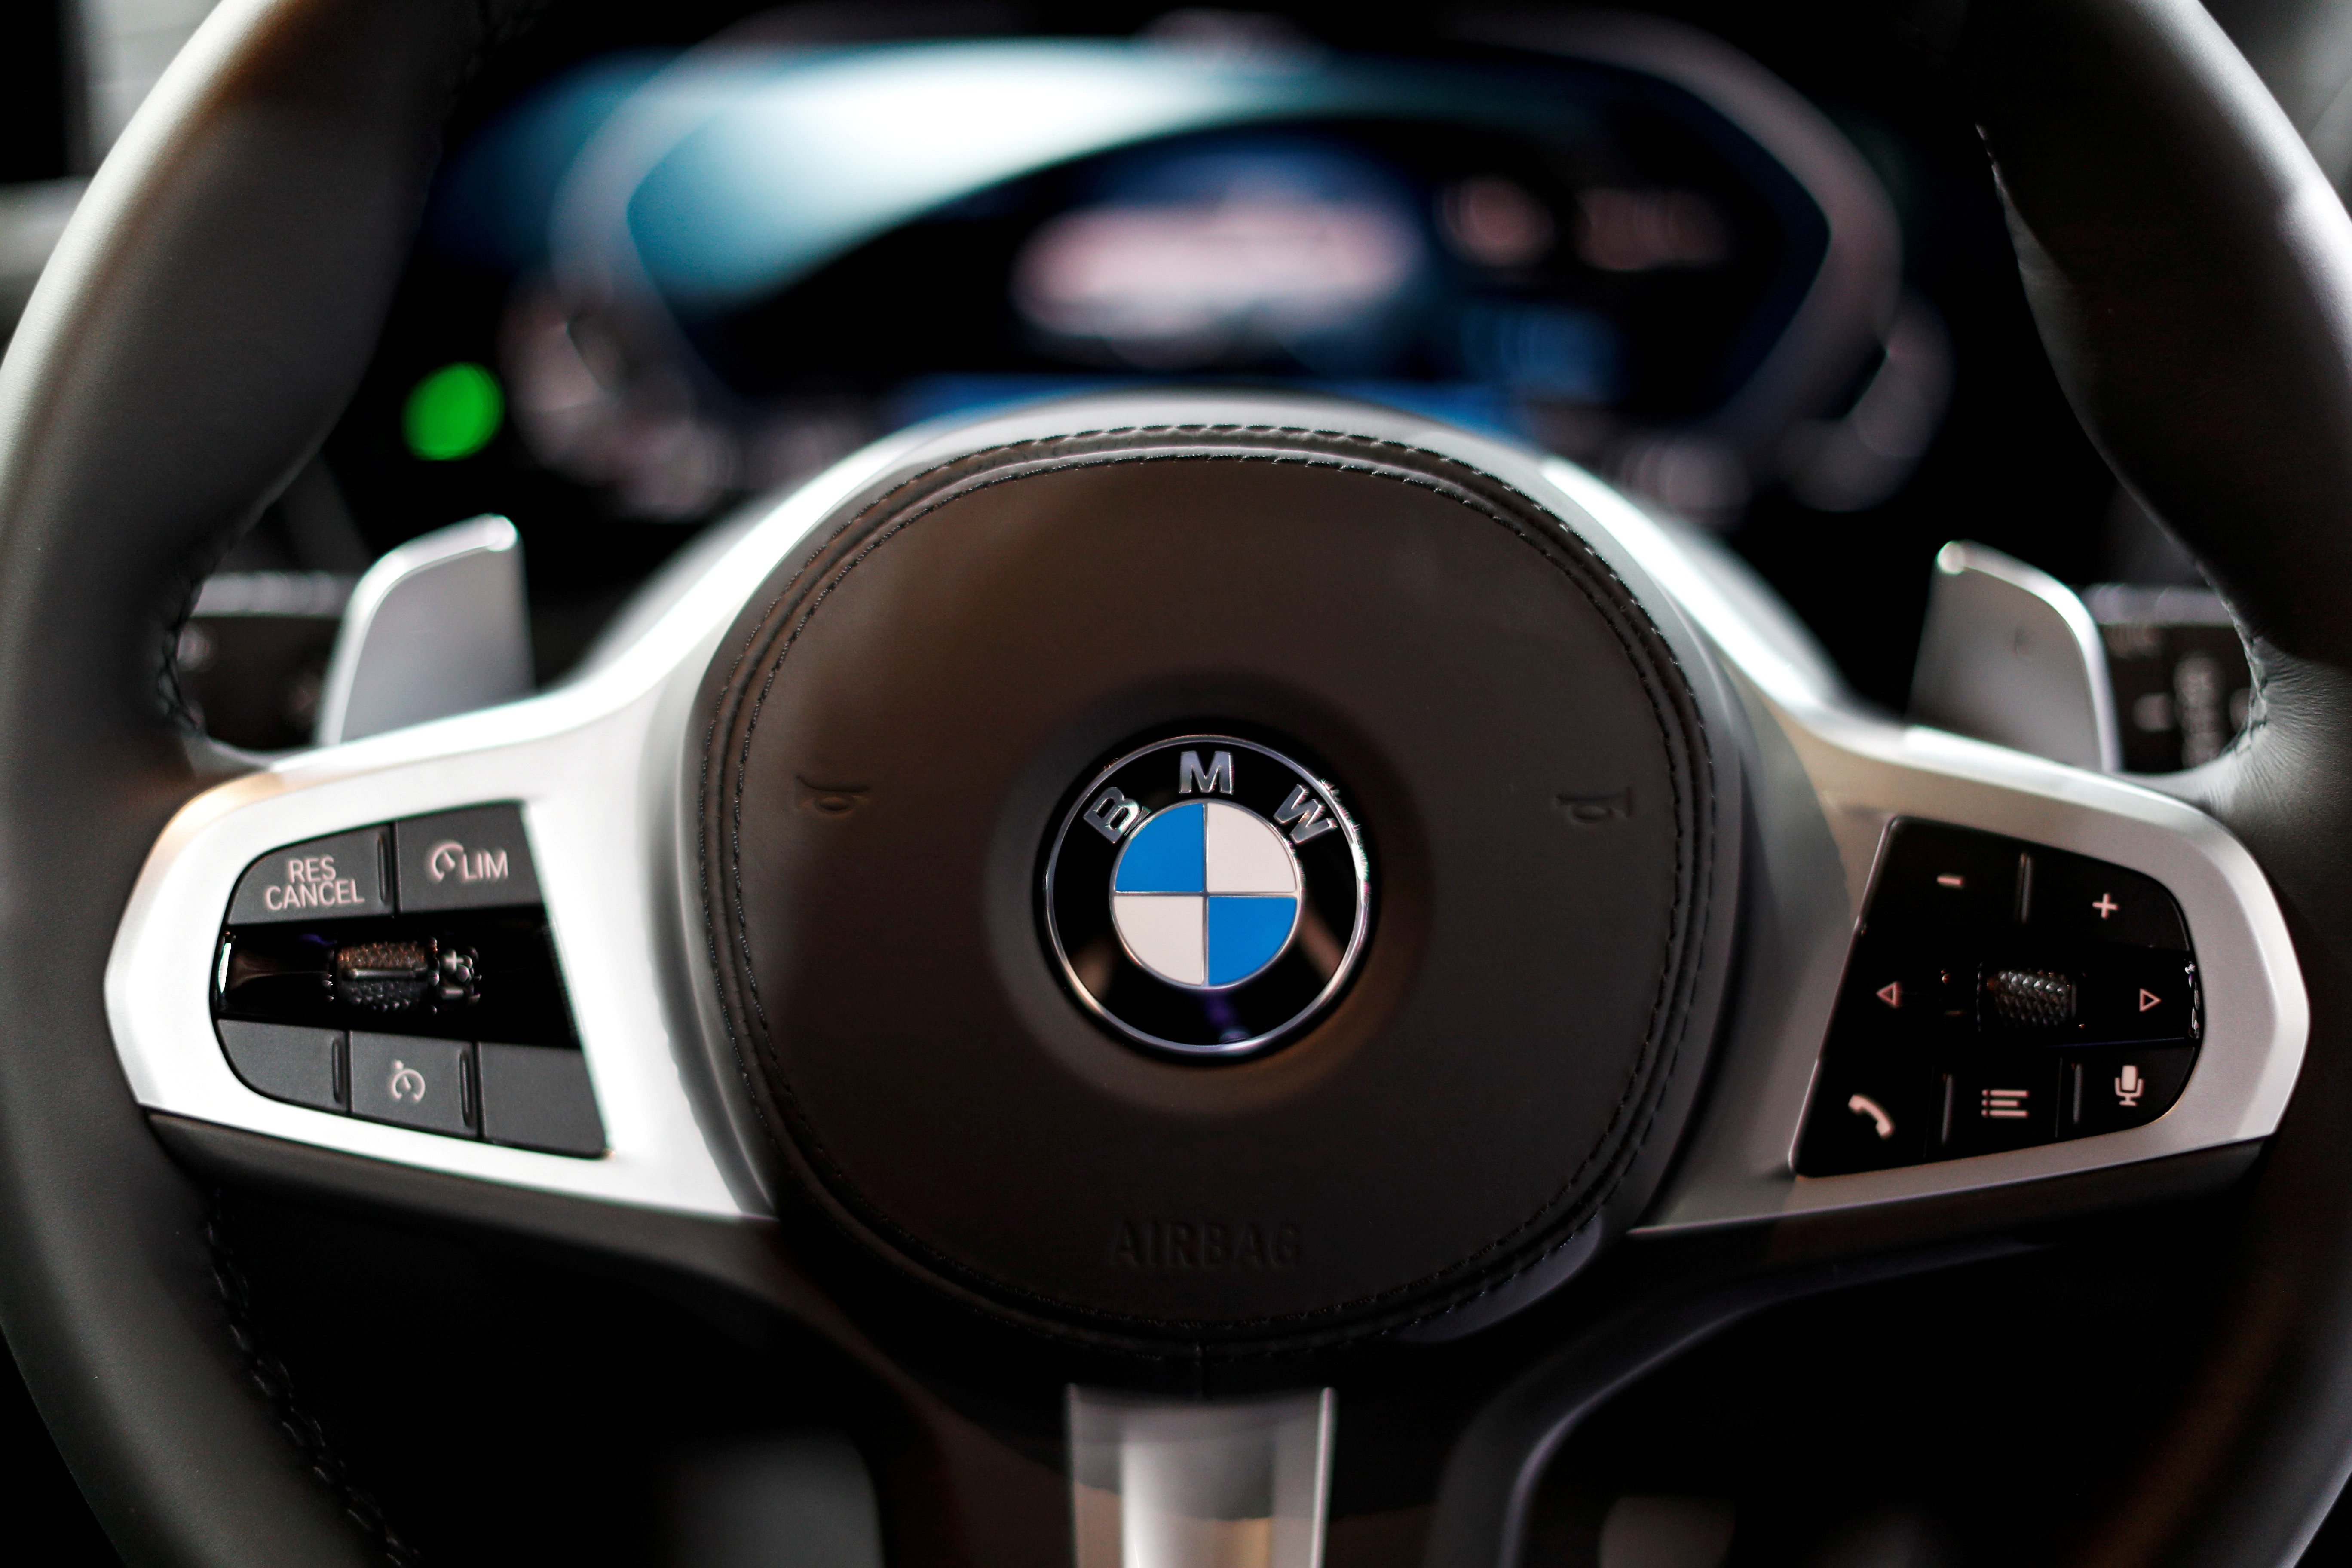 The BMW logo is seen on a steering wheel during the media day of the 41st Bangkok International Motor Show after the Thai government eased measures to prevent the spread of the coronavirus disease (COVID-19) in Bangkok, Thailand July 14, 2020. REUTERS/Jorge Silva/File Photo